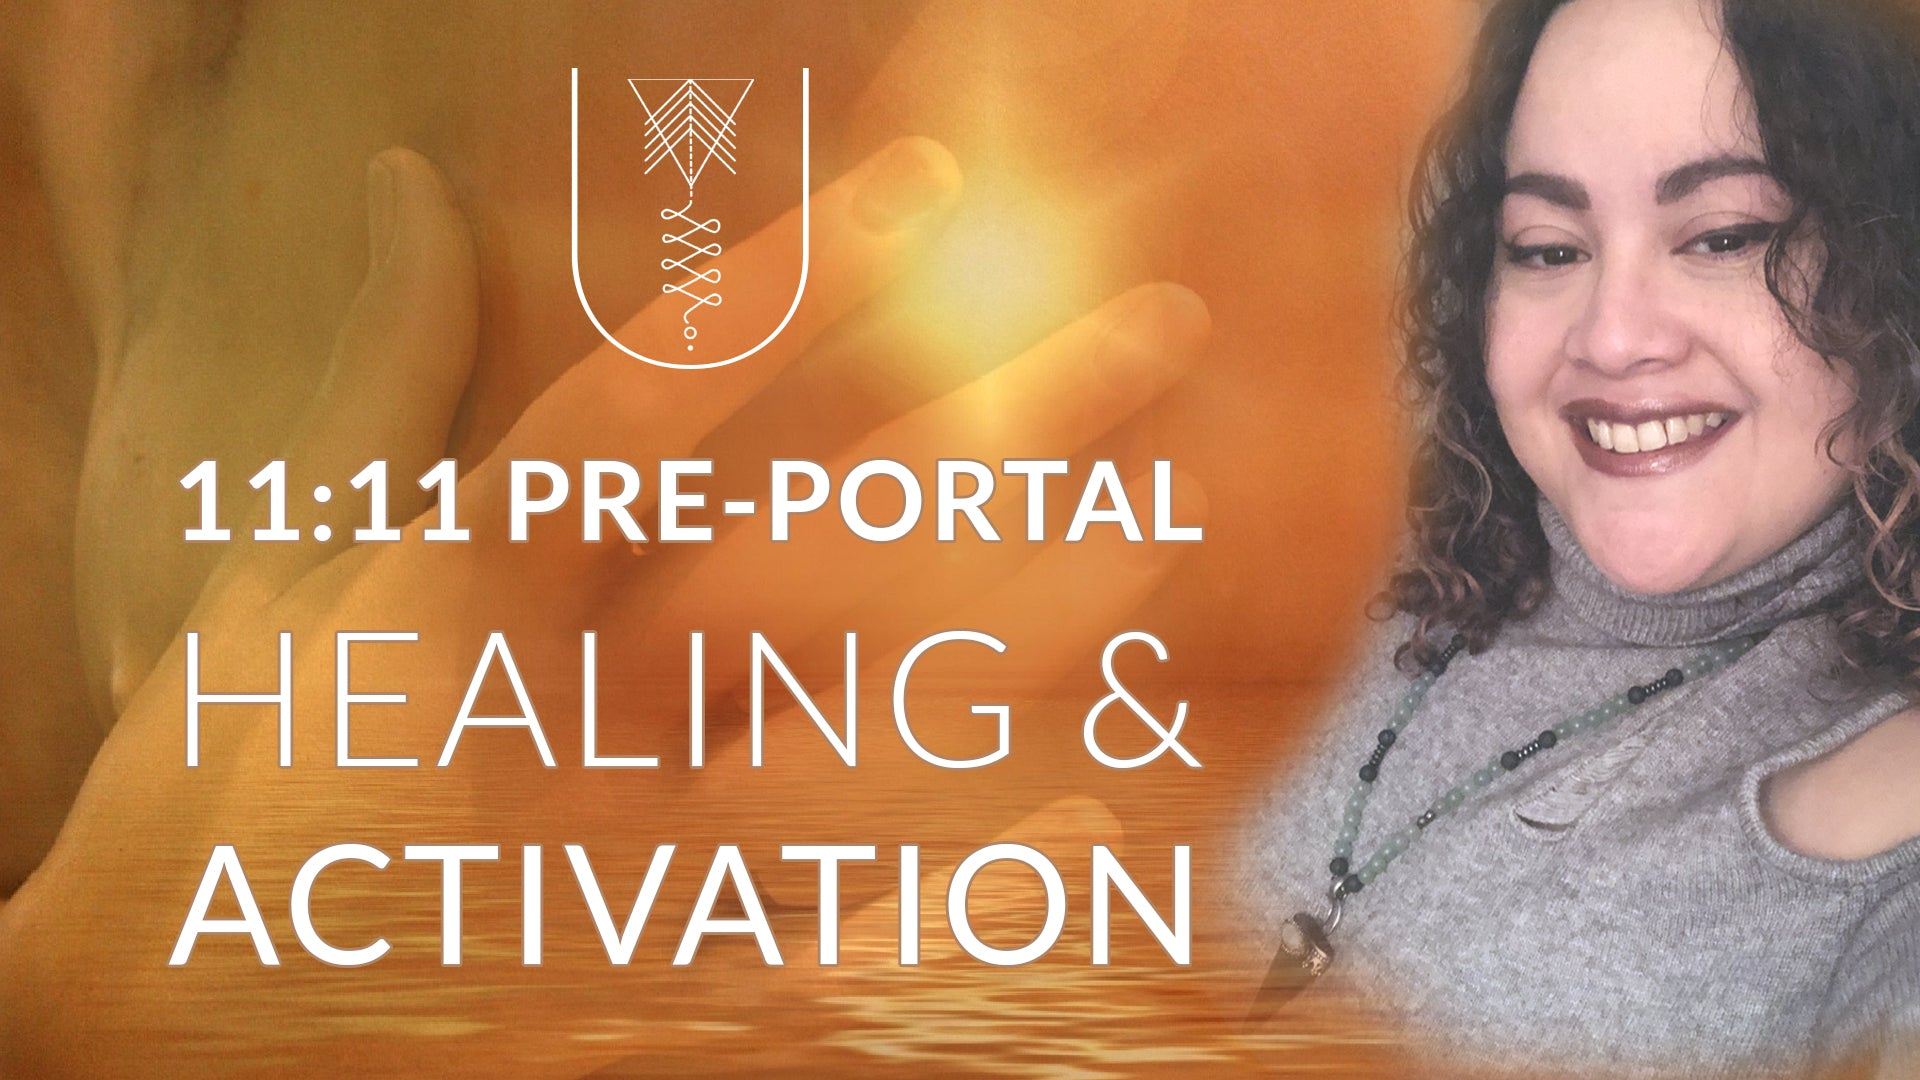 11:11 PORTAL Prep | Activating Golden Creator Energy | Aligning with Light